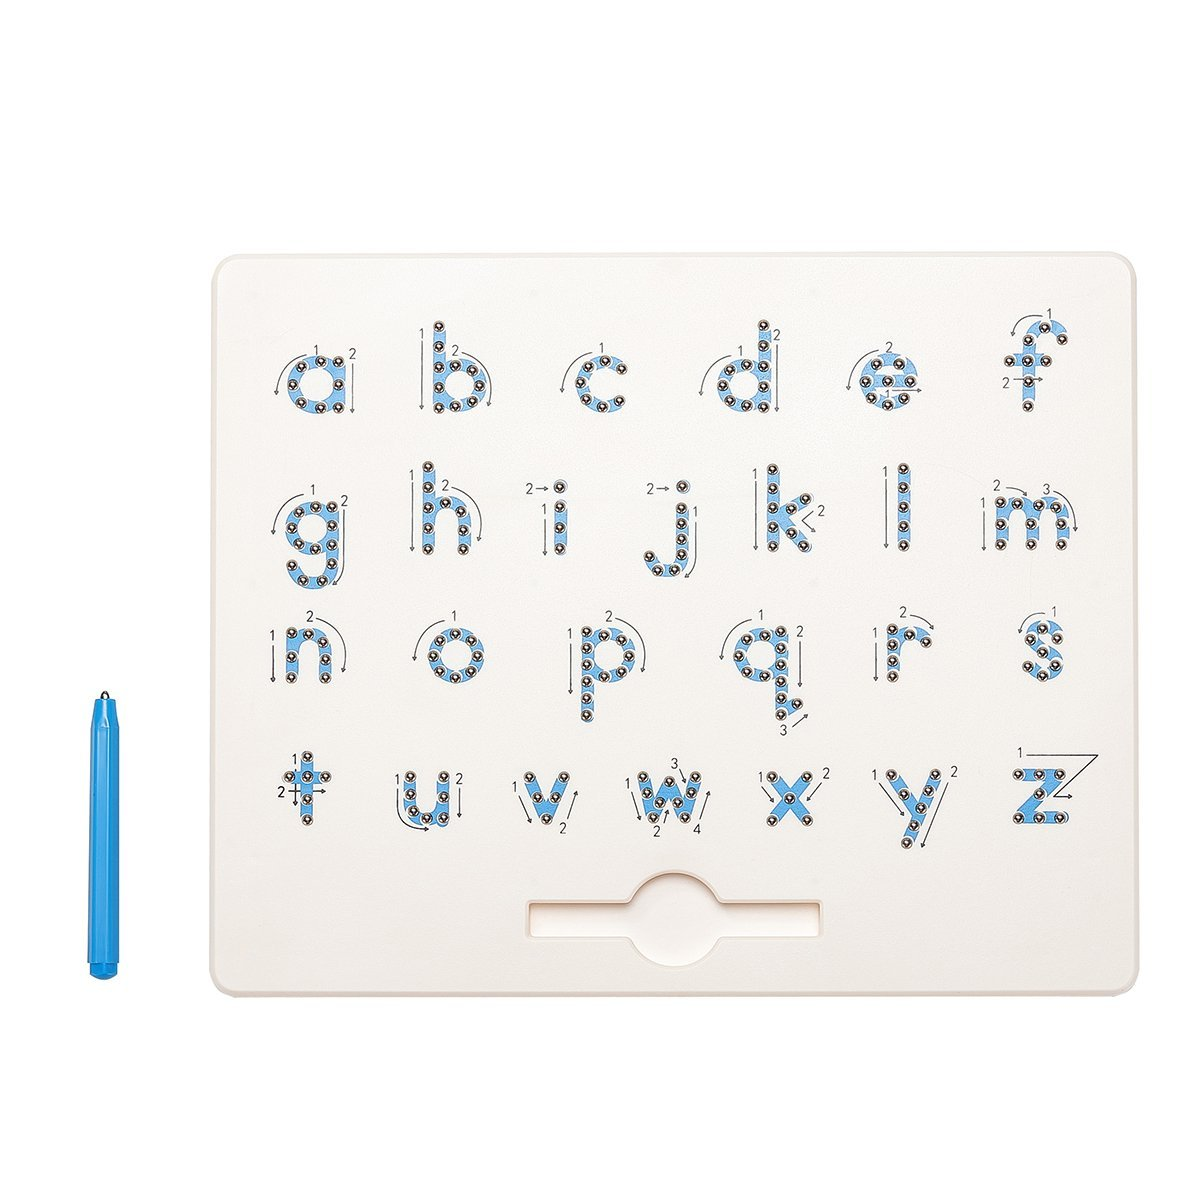 Super Cool Toys A to Z Letter Lower Upper Case Numbers Magna Doodle Children's Handwriting Development Learning Toy for Toddlers (Letter (Lower Case)) by Super Cool Toys